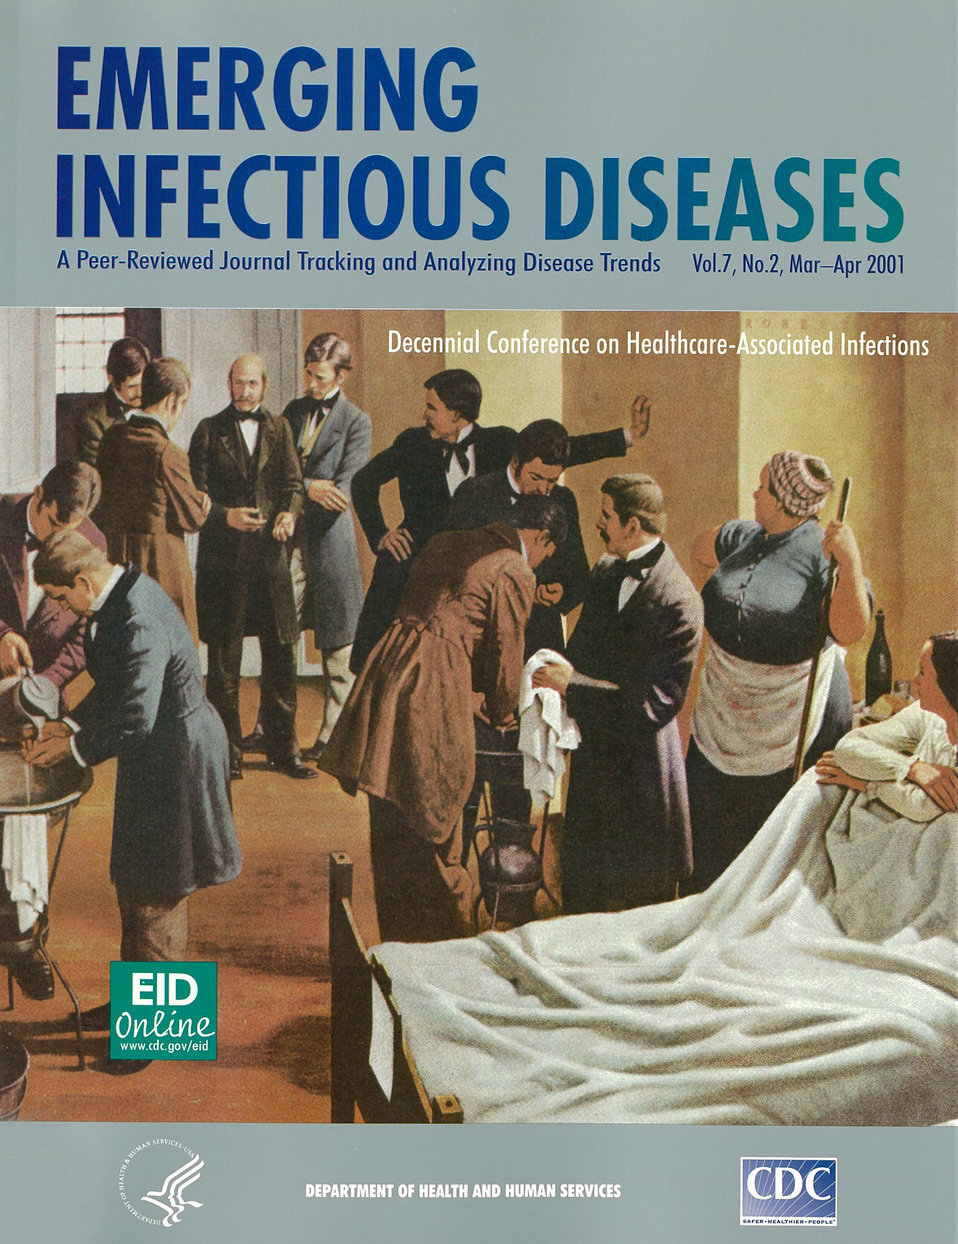 Emerging Infectious Diseases (EID) cover artwork for Volume 7, Number 2, March-April 2001 issue.